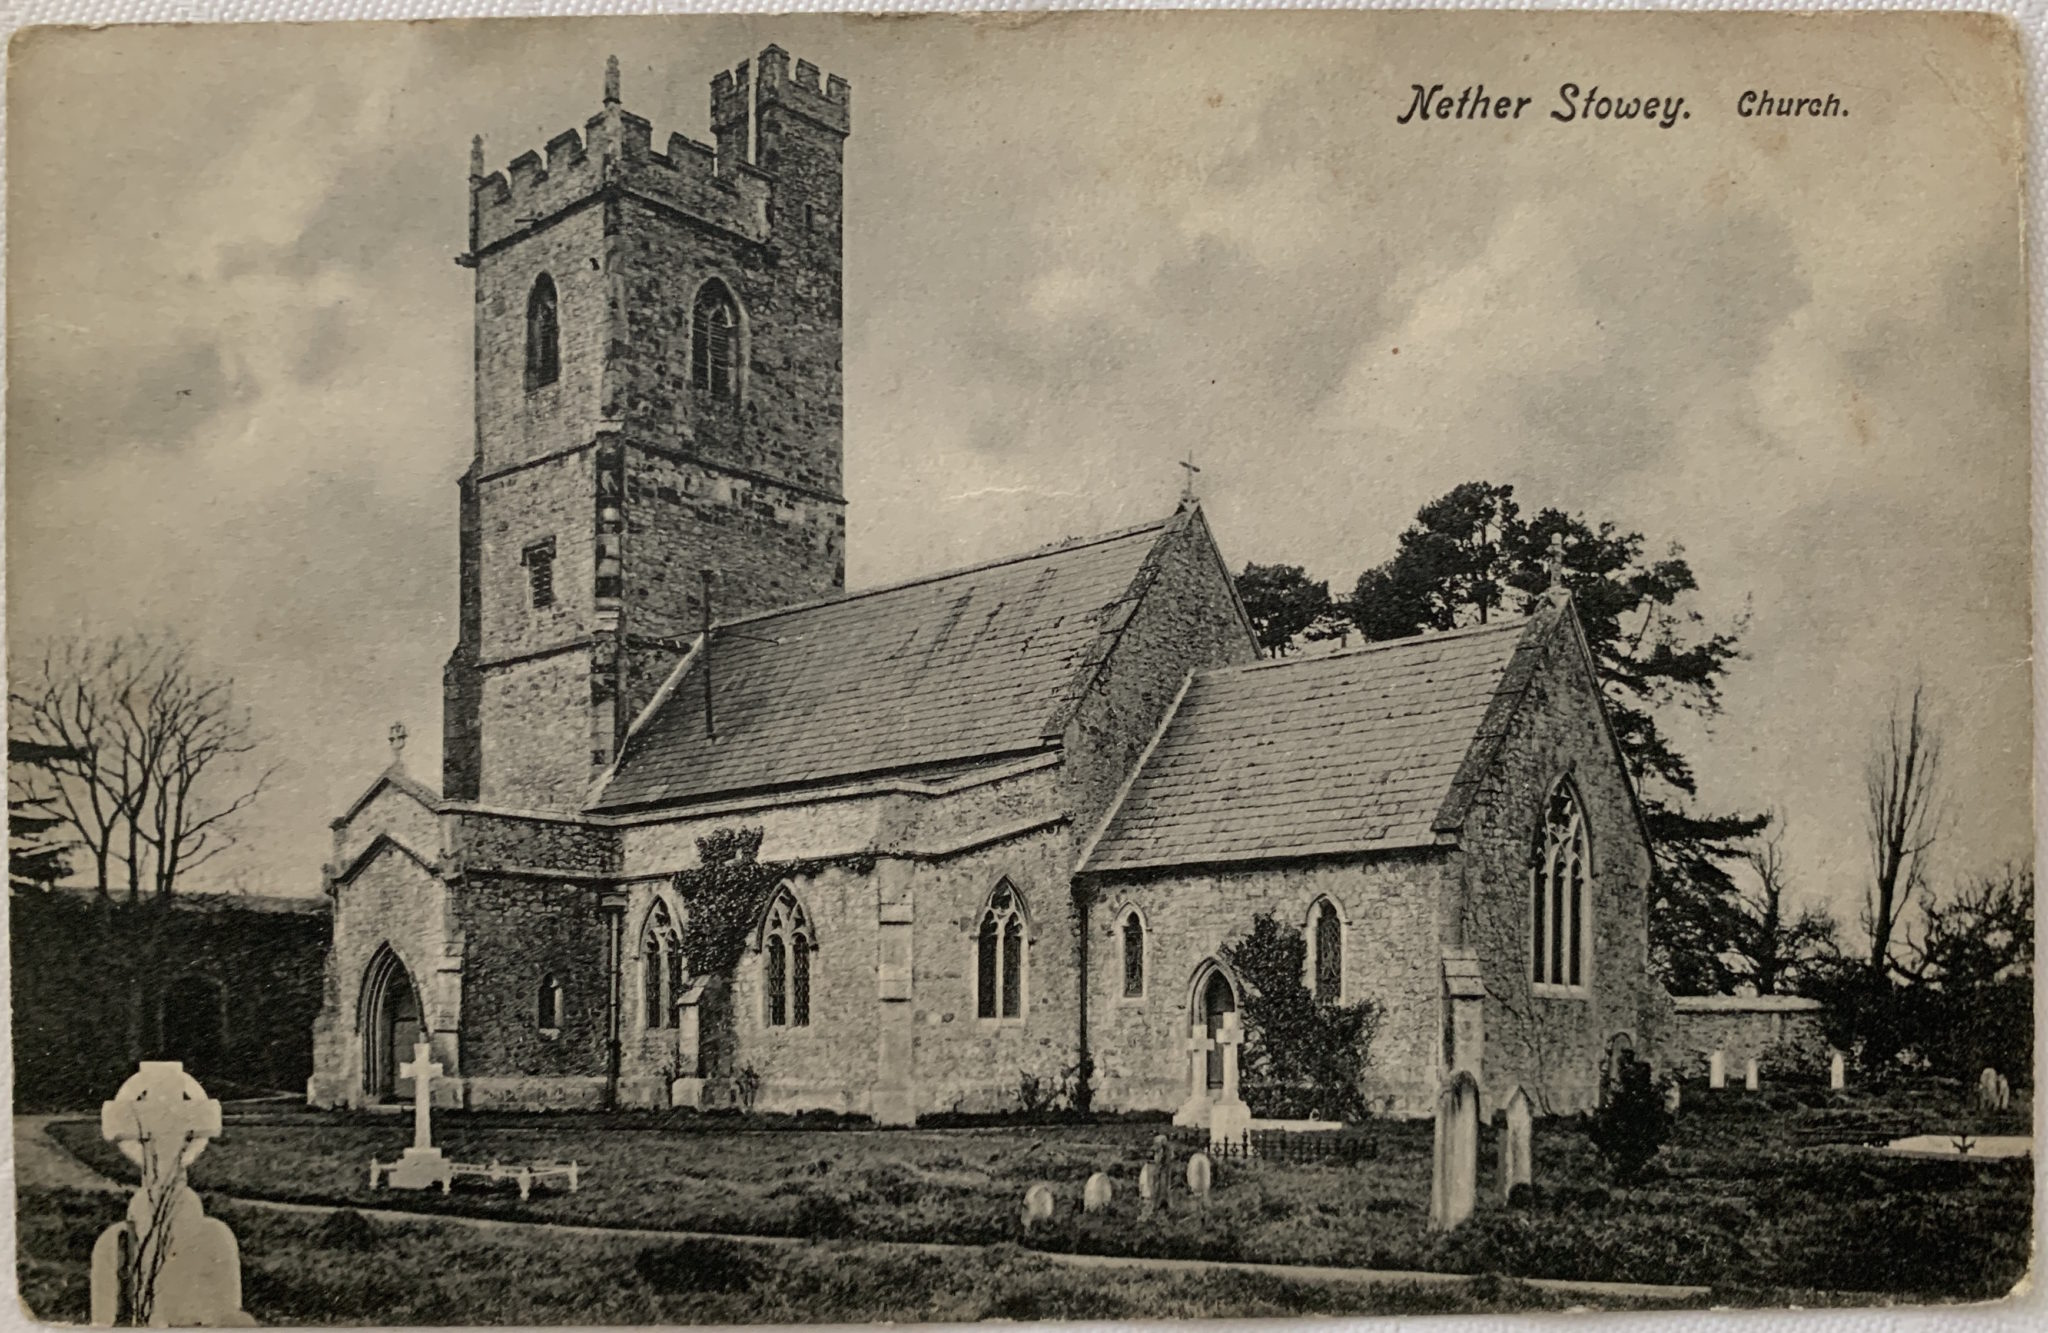 Nether Stowey Church